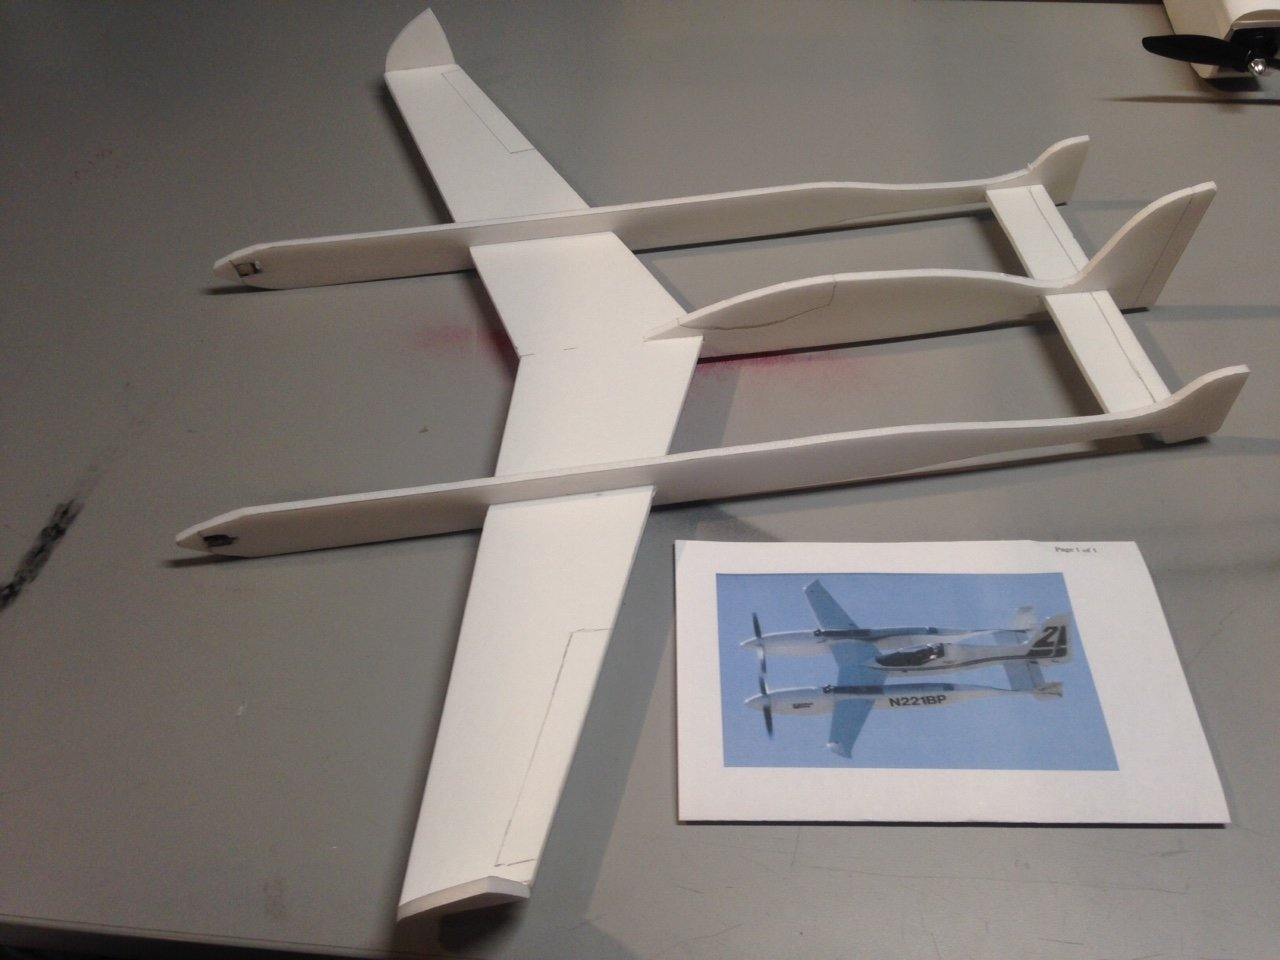 Chuck Glider for younger students (plans included) | Flite Test